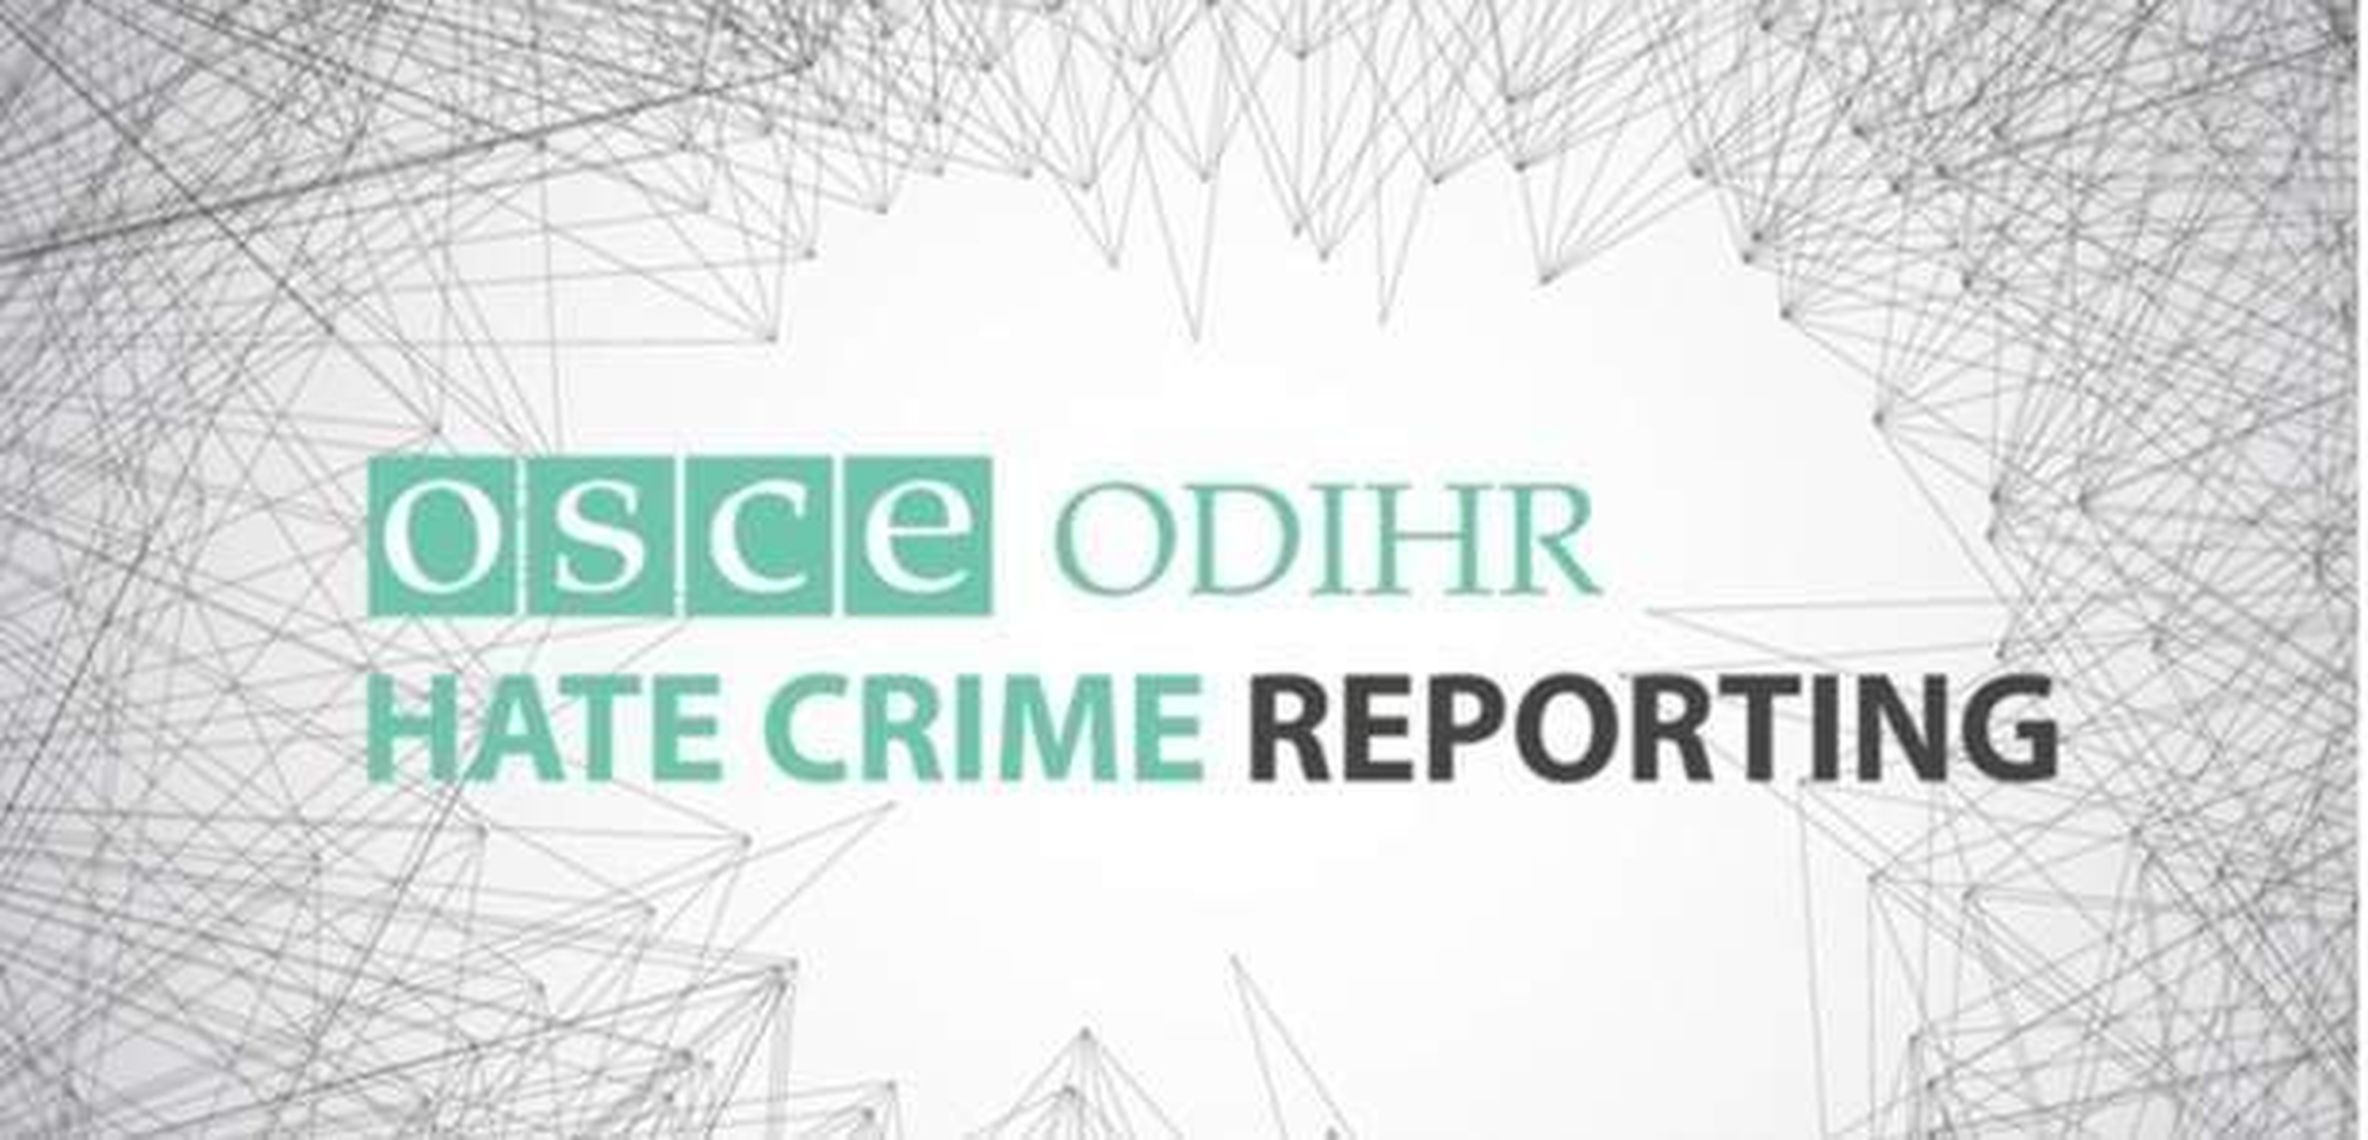 OSCE/ODIHR Featured Image